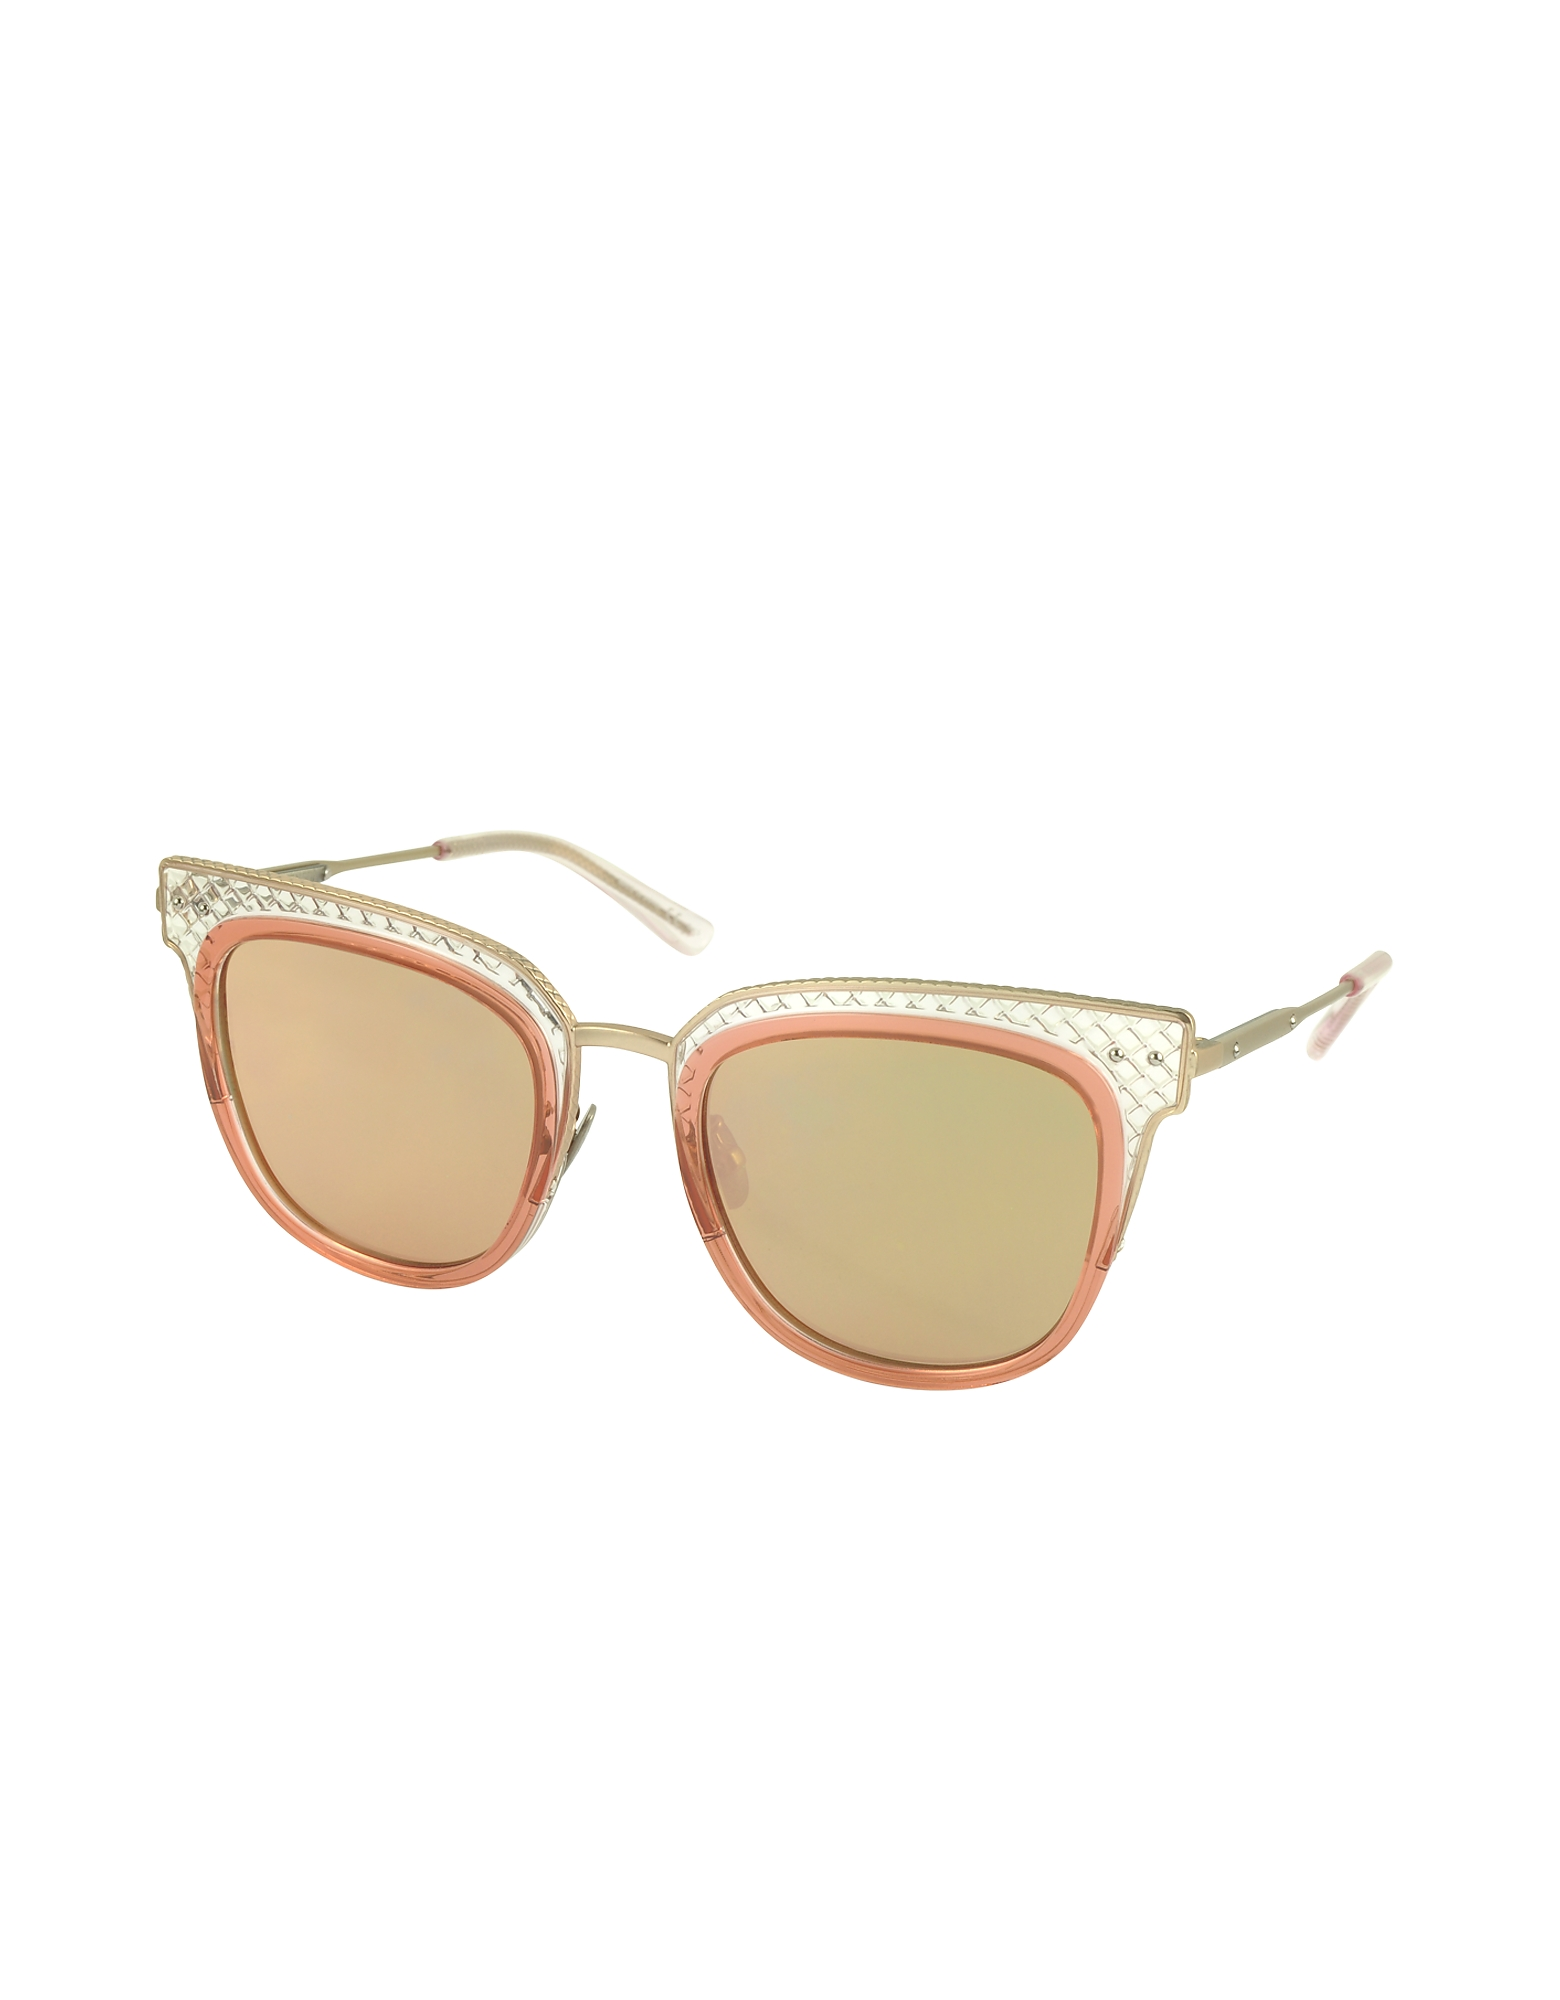 BV0122S Square Acetate Frame Women's Sunglasses от Forzieri.com INT